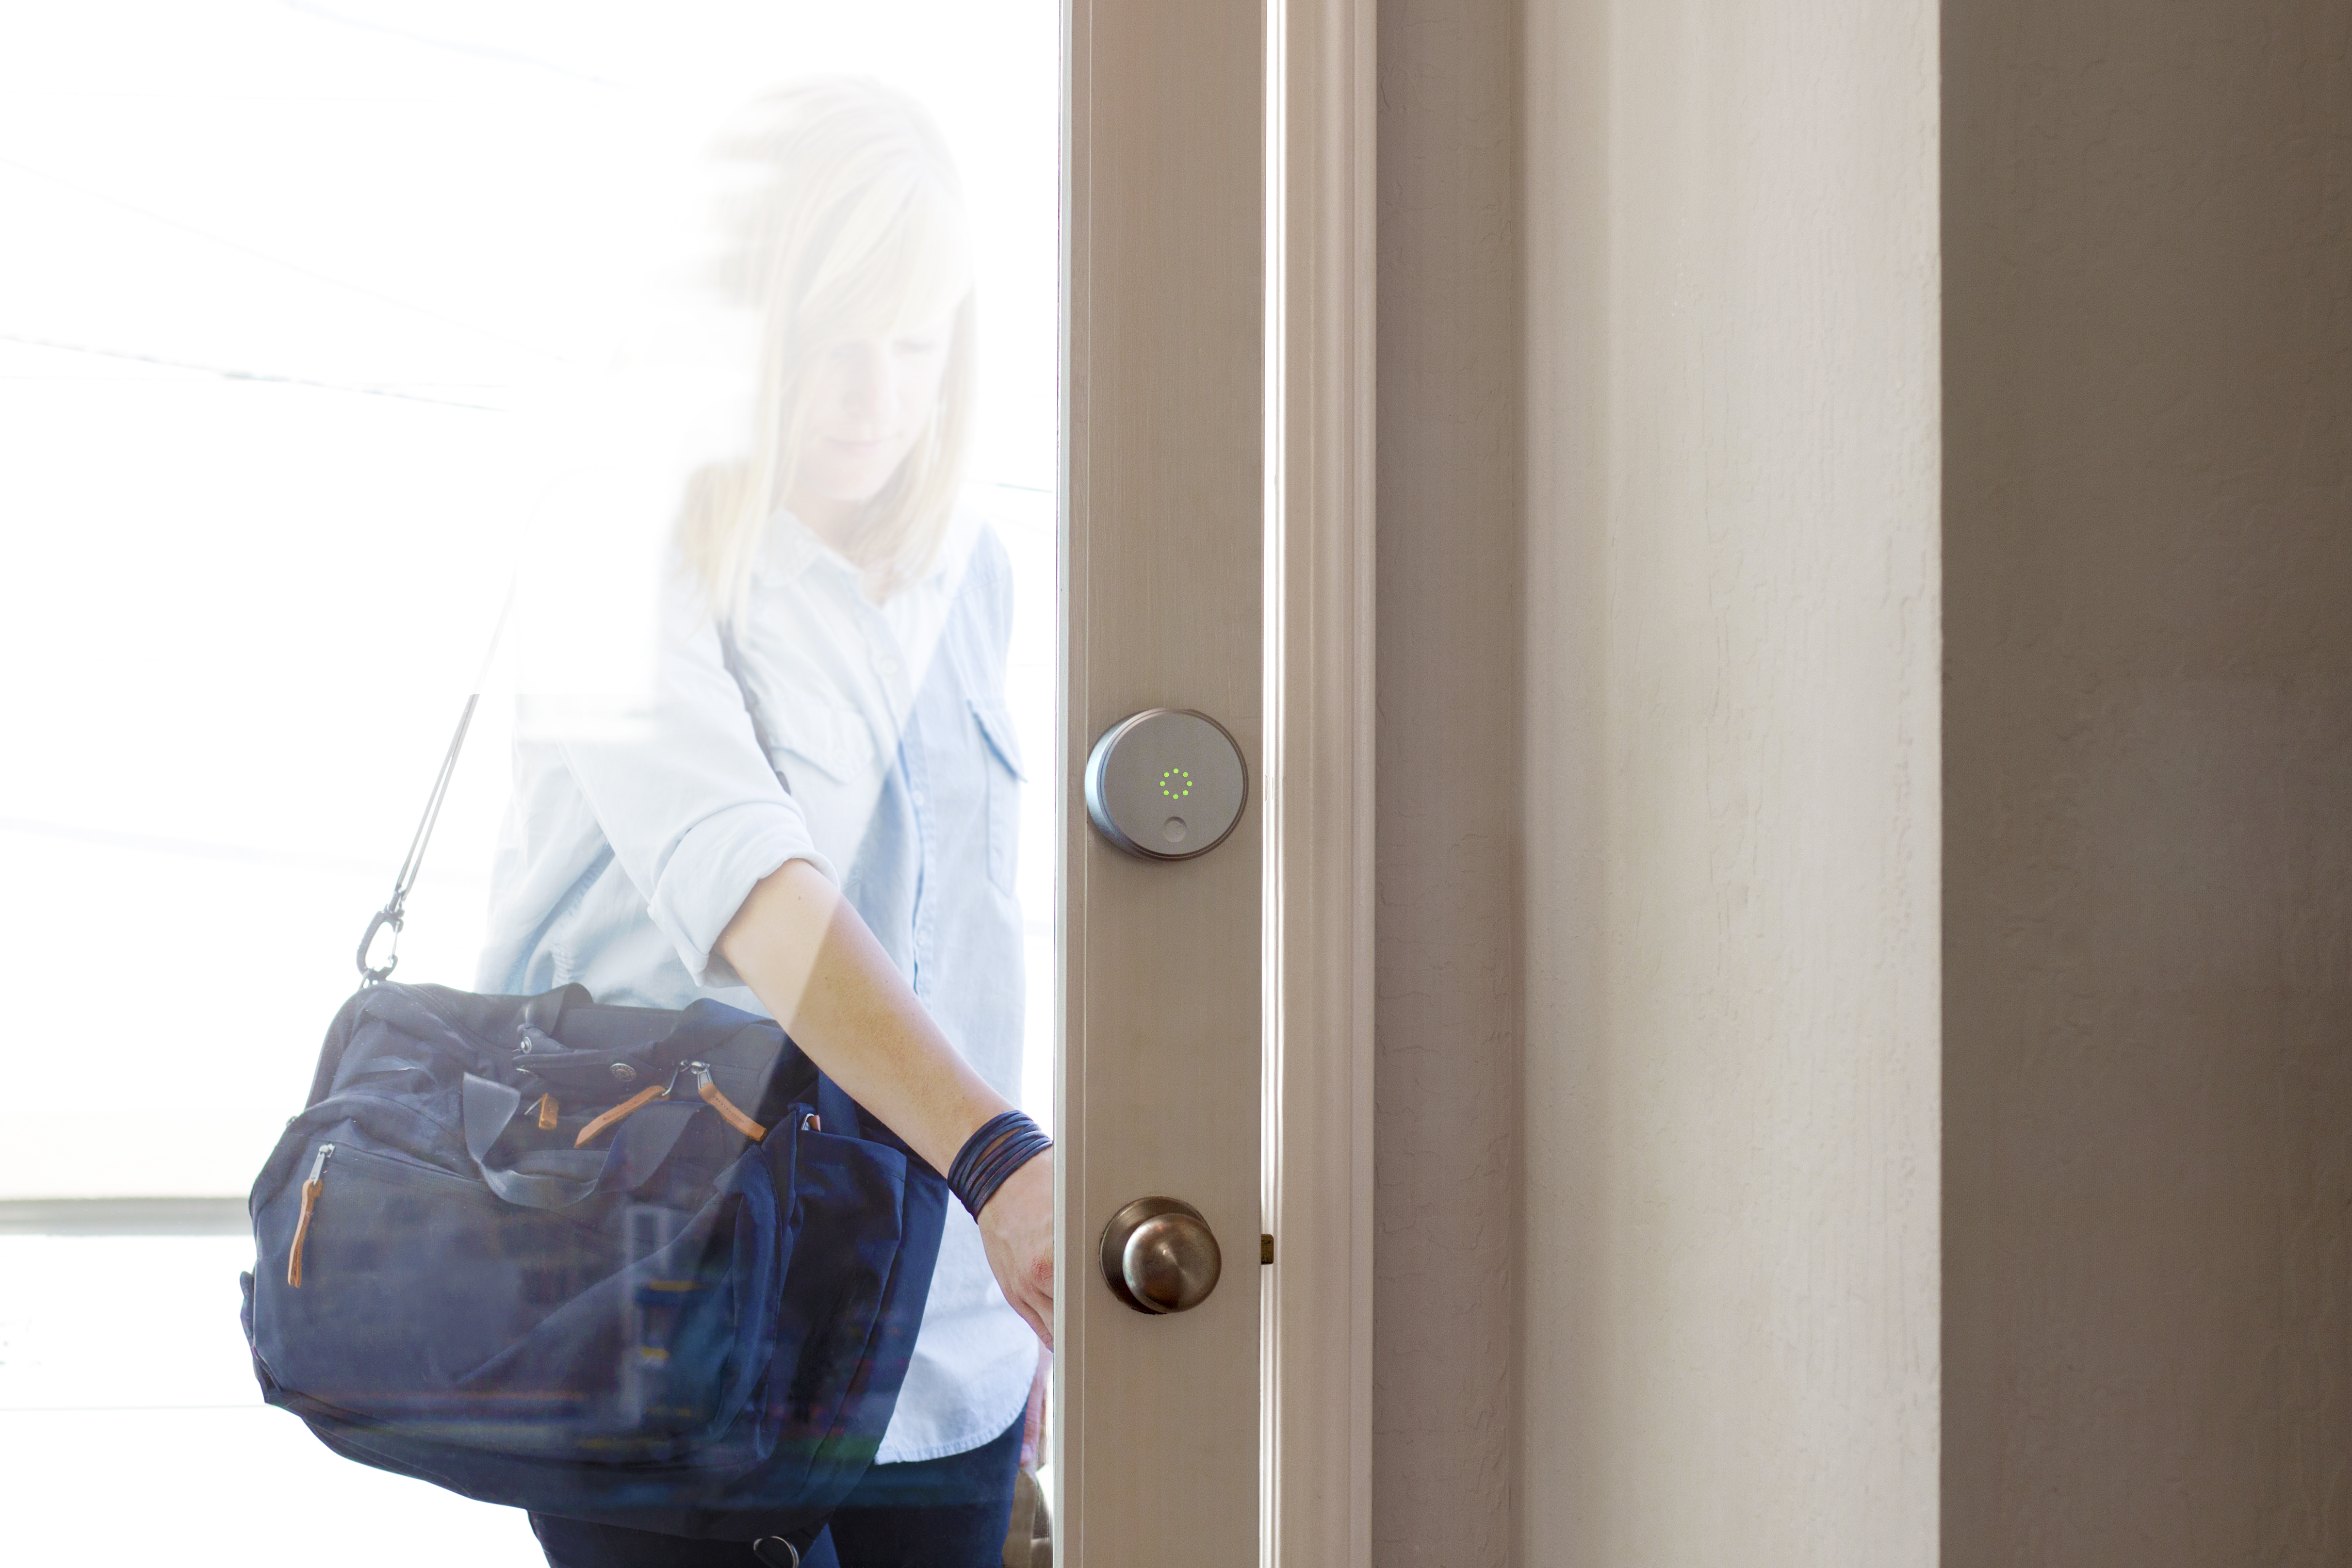 A door equipped with an August smart lock